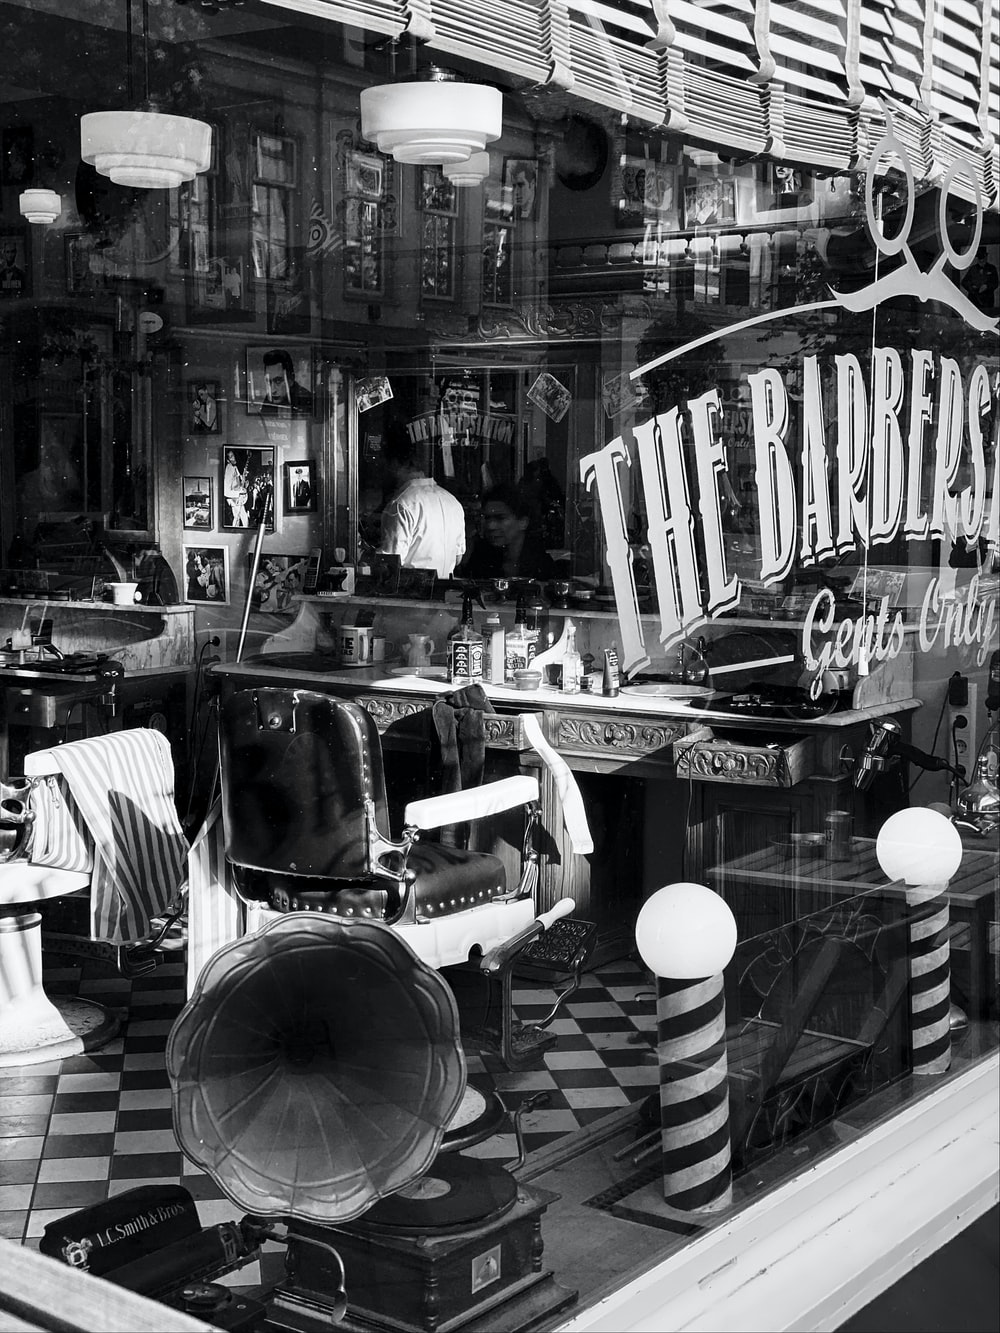 The Barbers store in grayscale photography